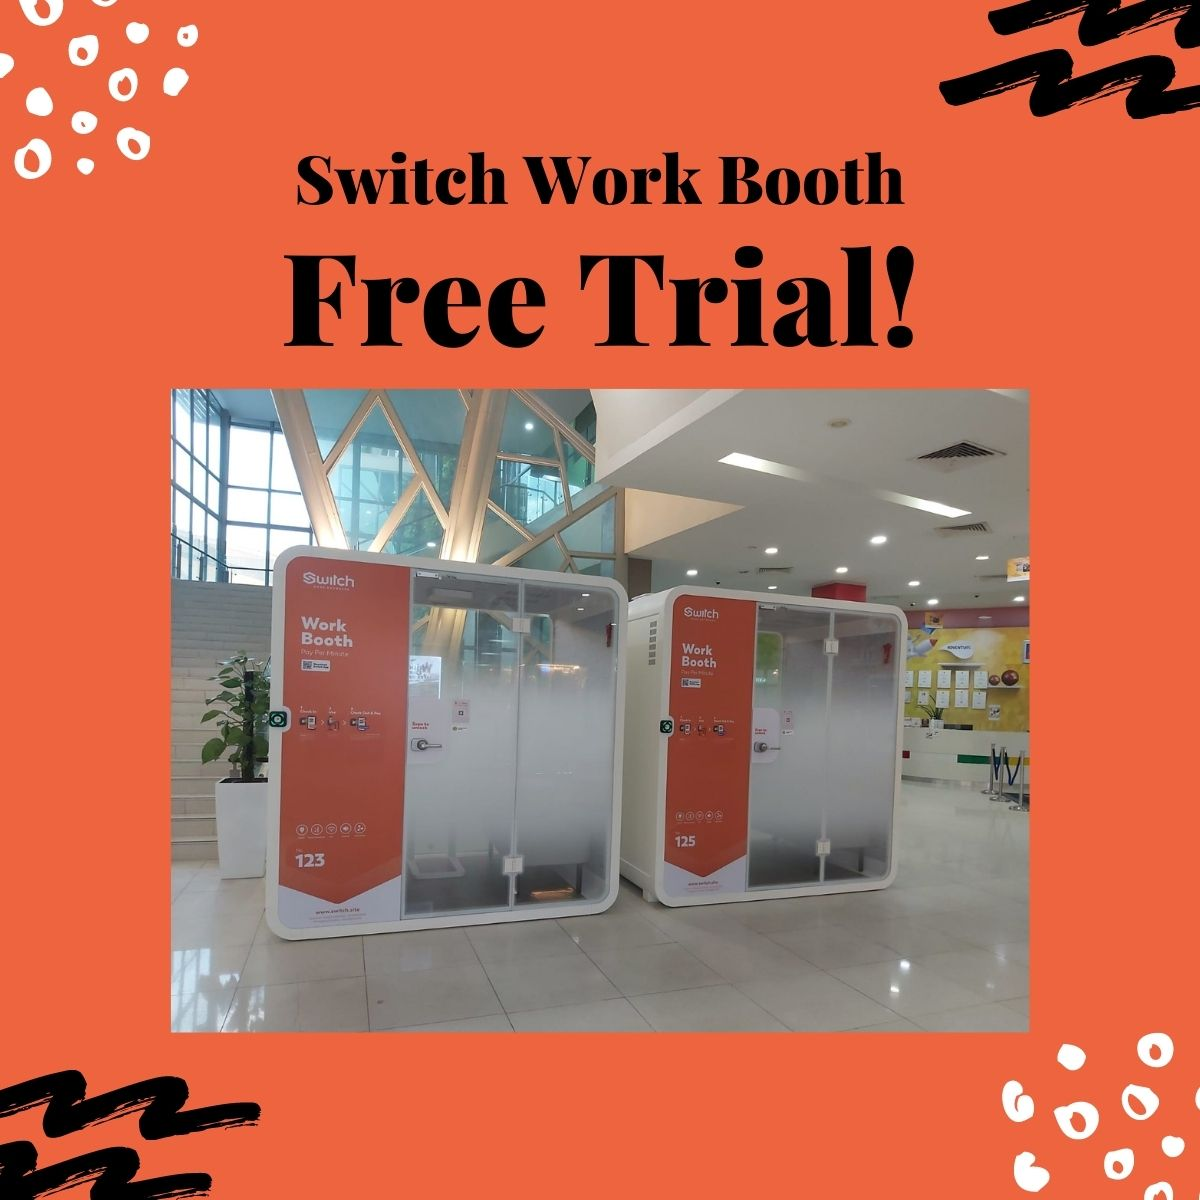 SAFRA Jurong - One-Time Free Entry To Switch Work Booth